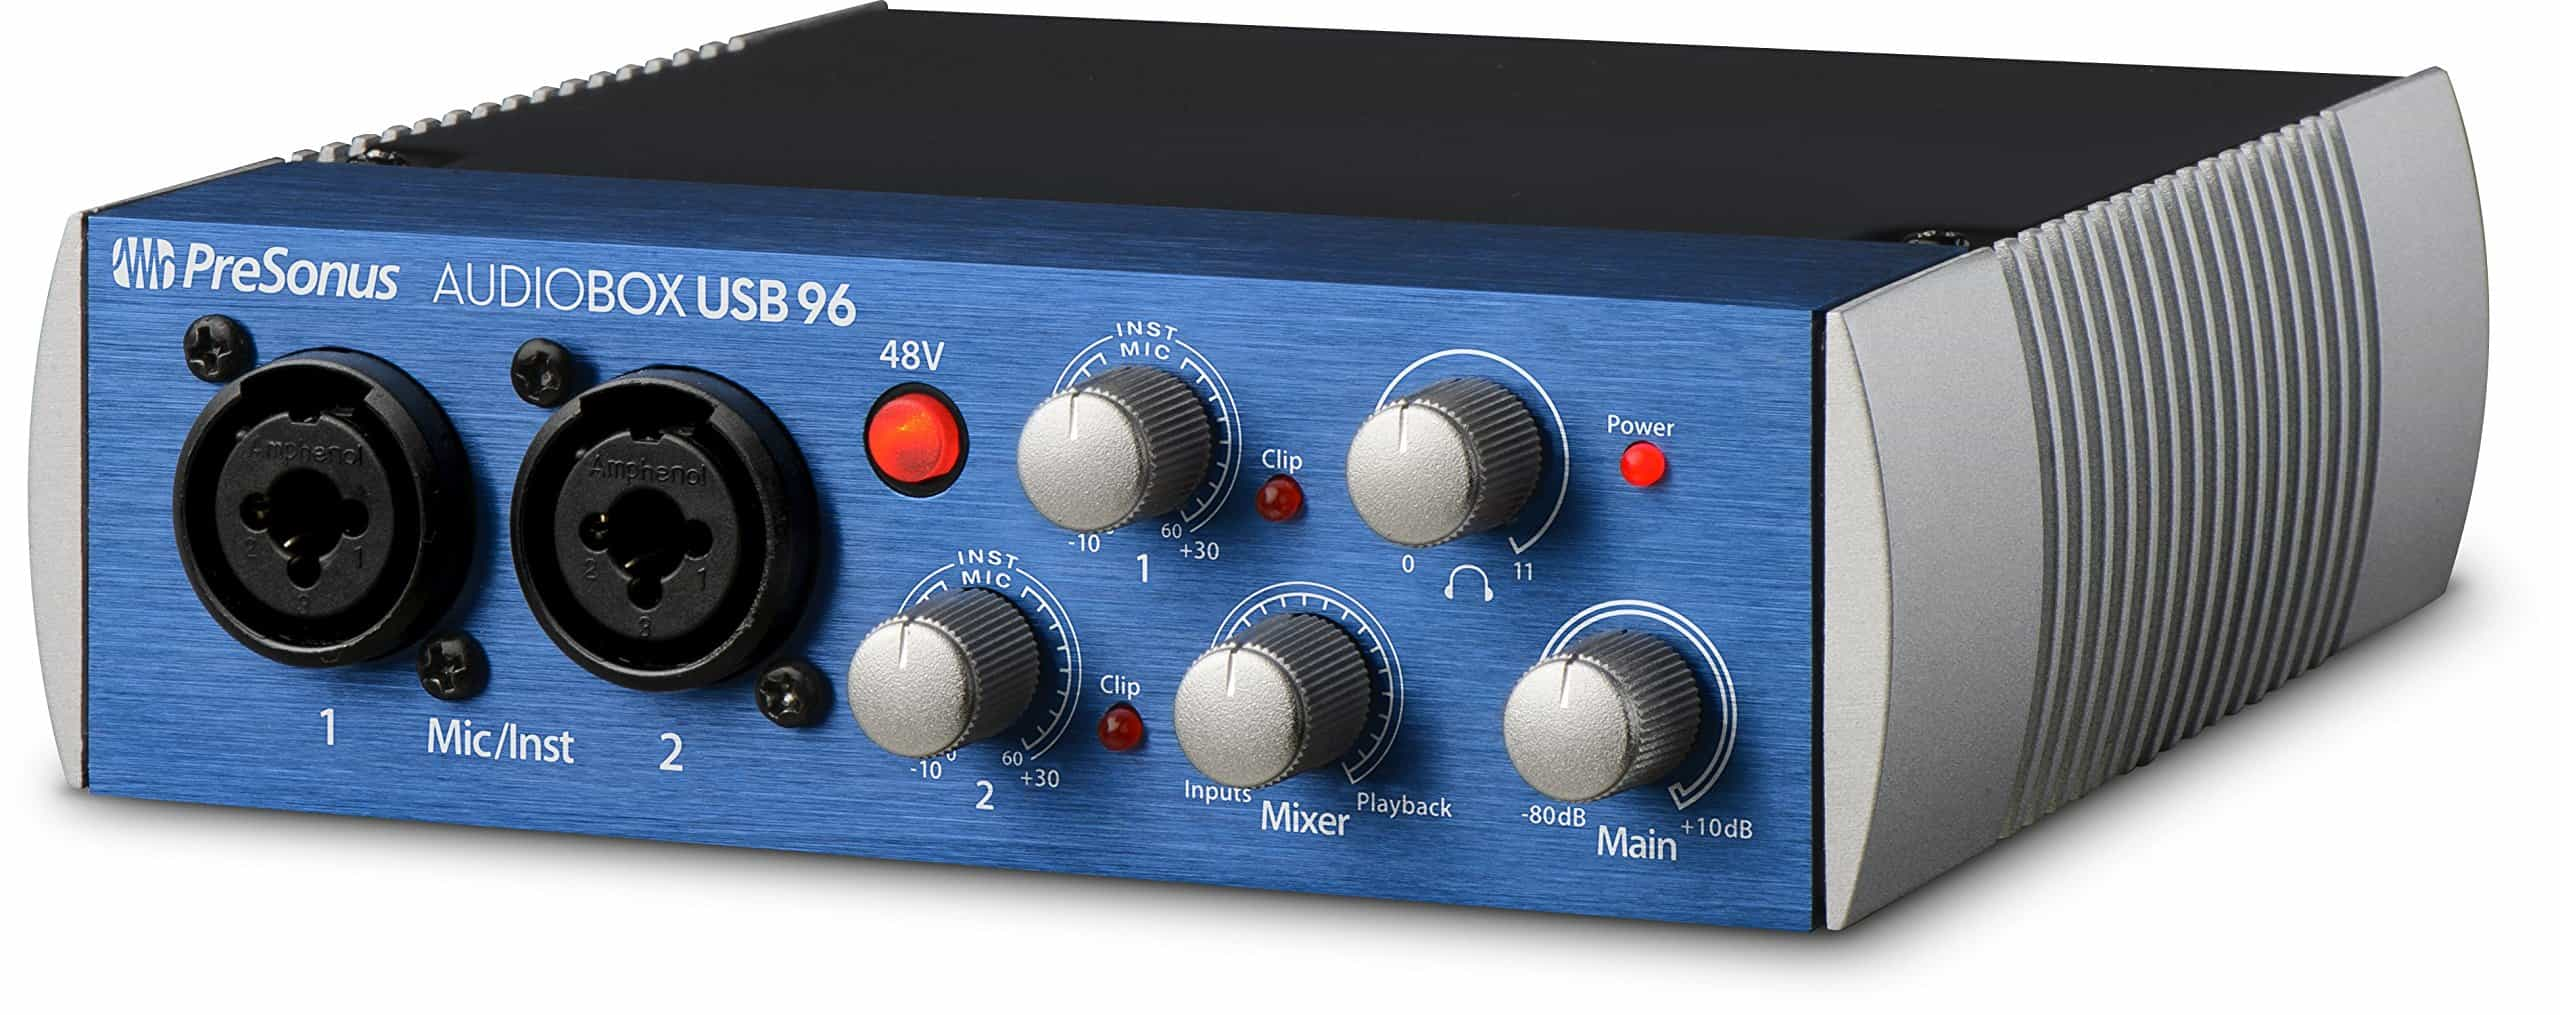 Image result for AUdiobox usb 96 studio -ultimate